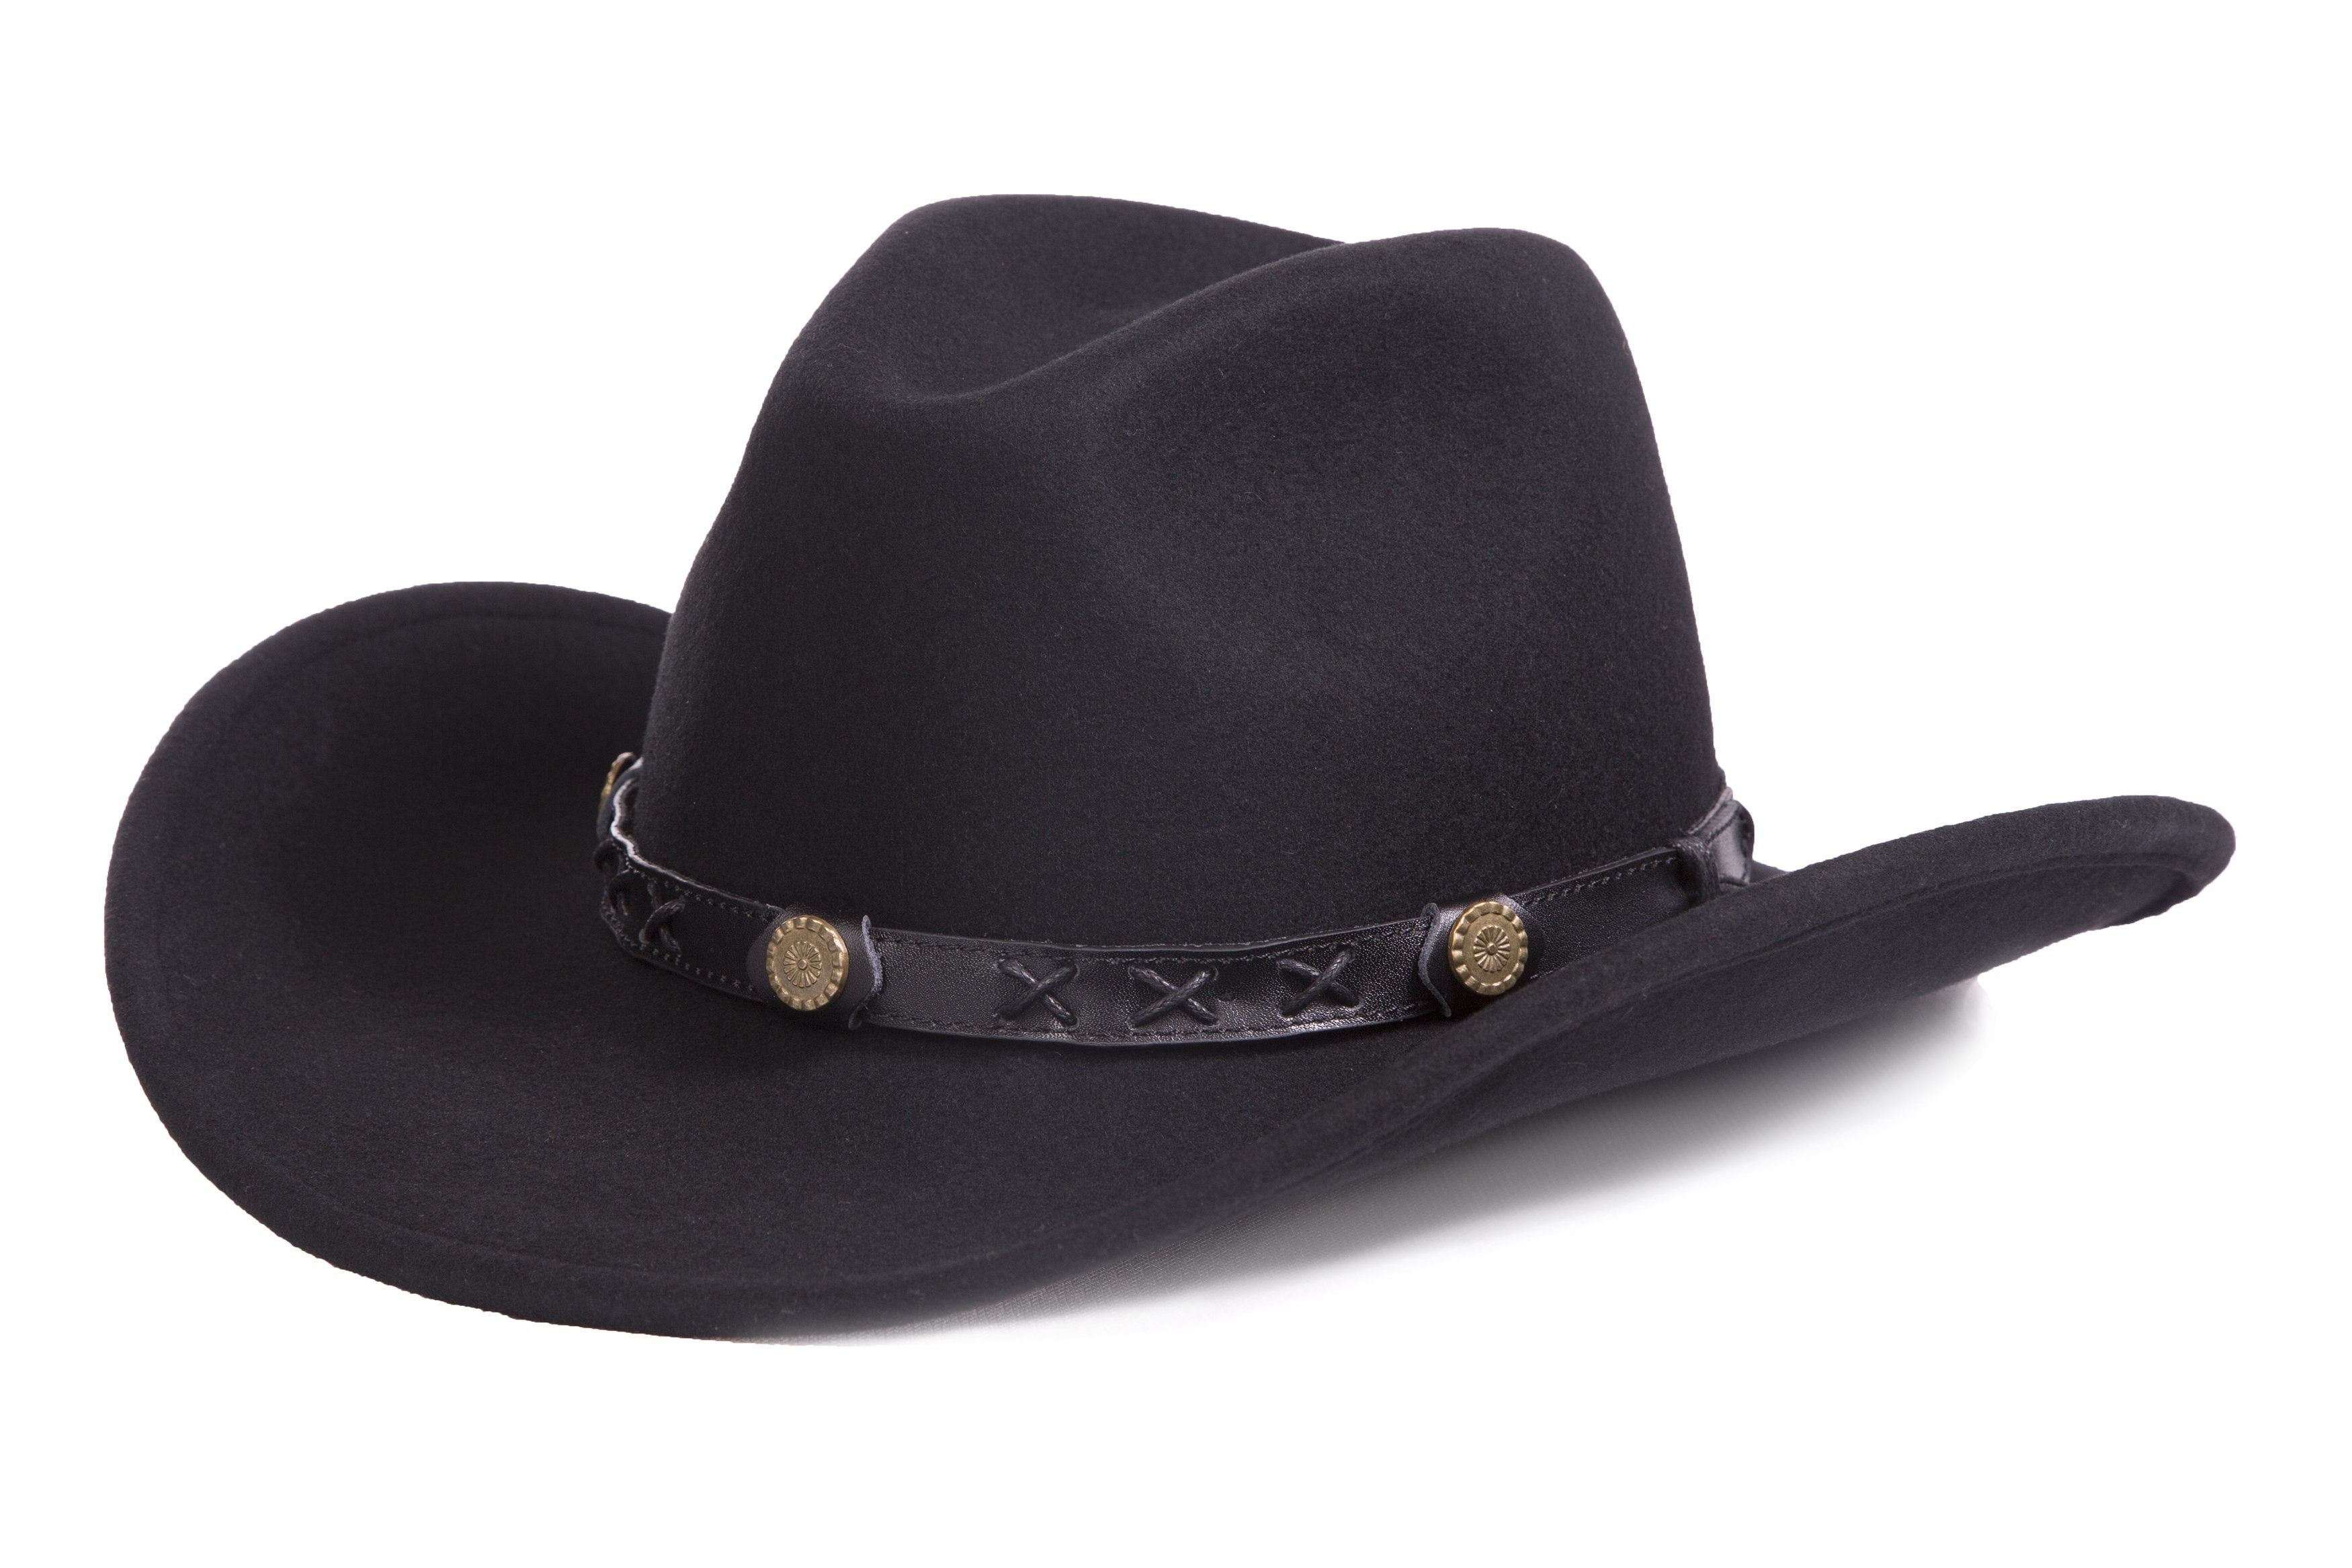 Black Crushable Wool Western Dakota Cowboy Hat - Giorgio's Menswear